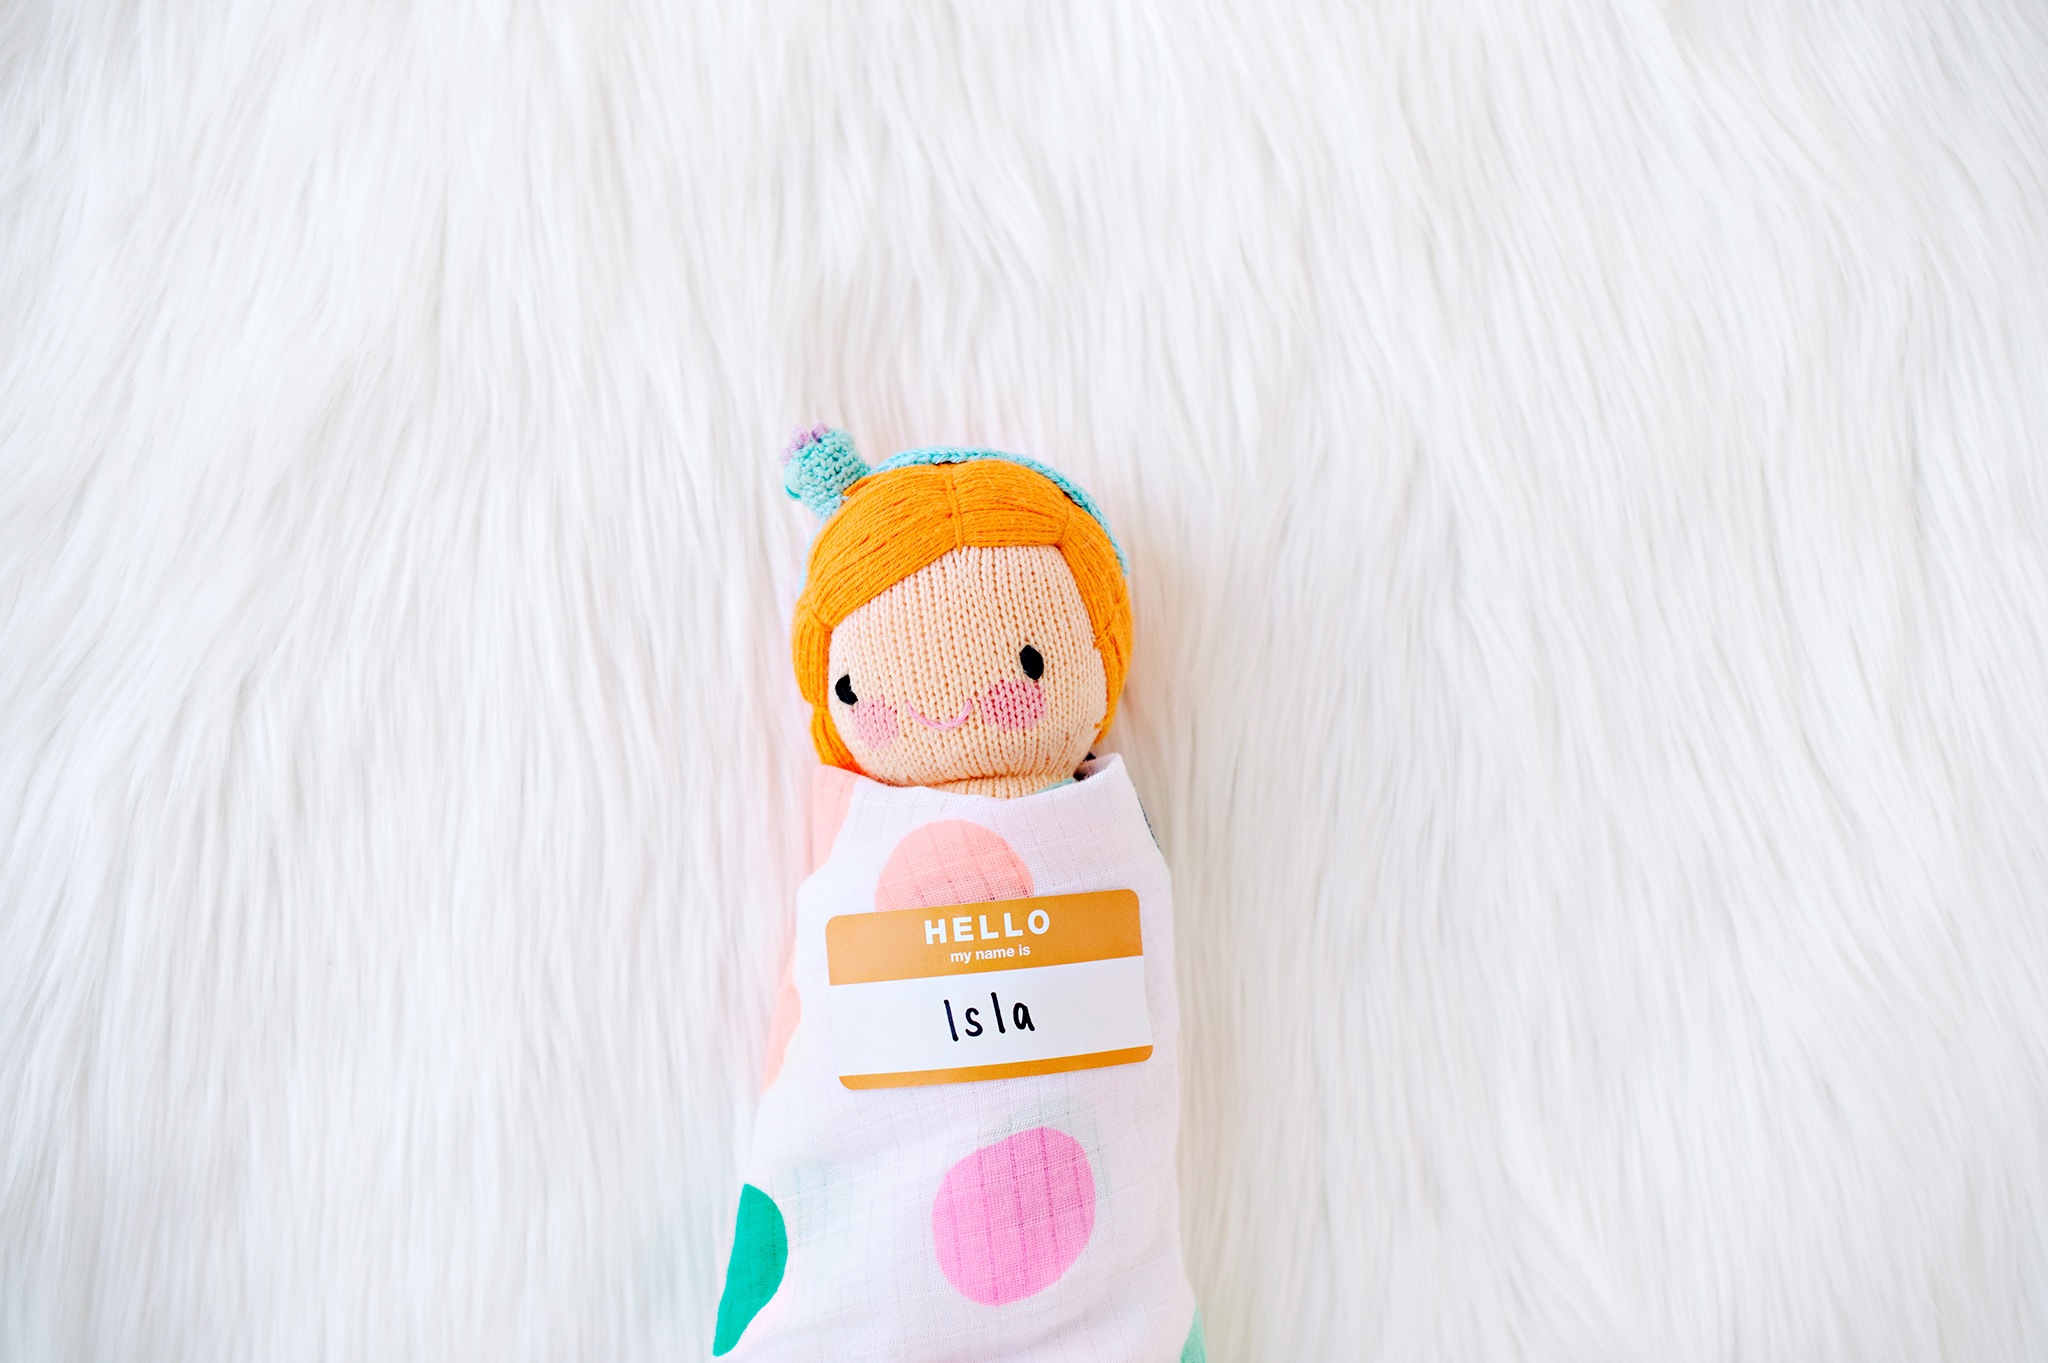 A close up of a stuffed doll wrapped in a blanket with a name tag on it.